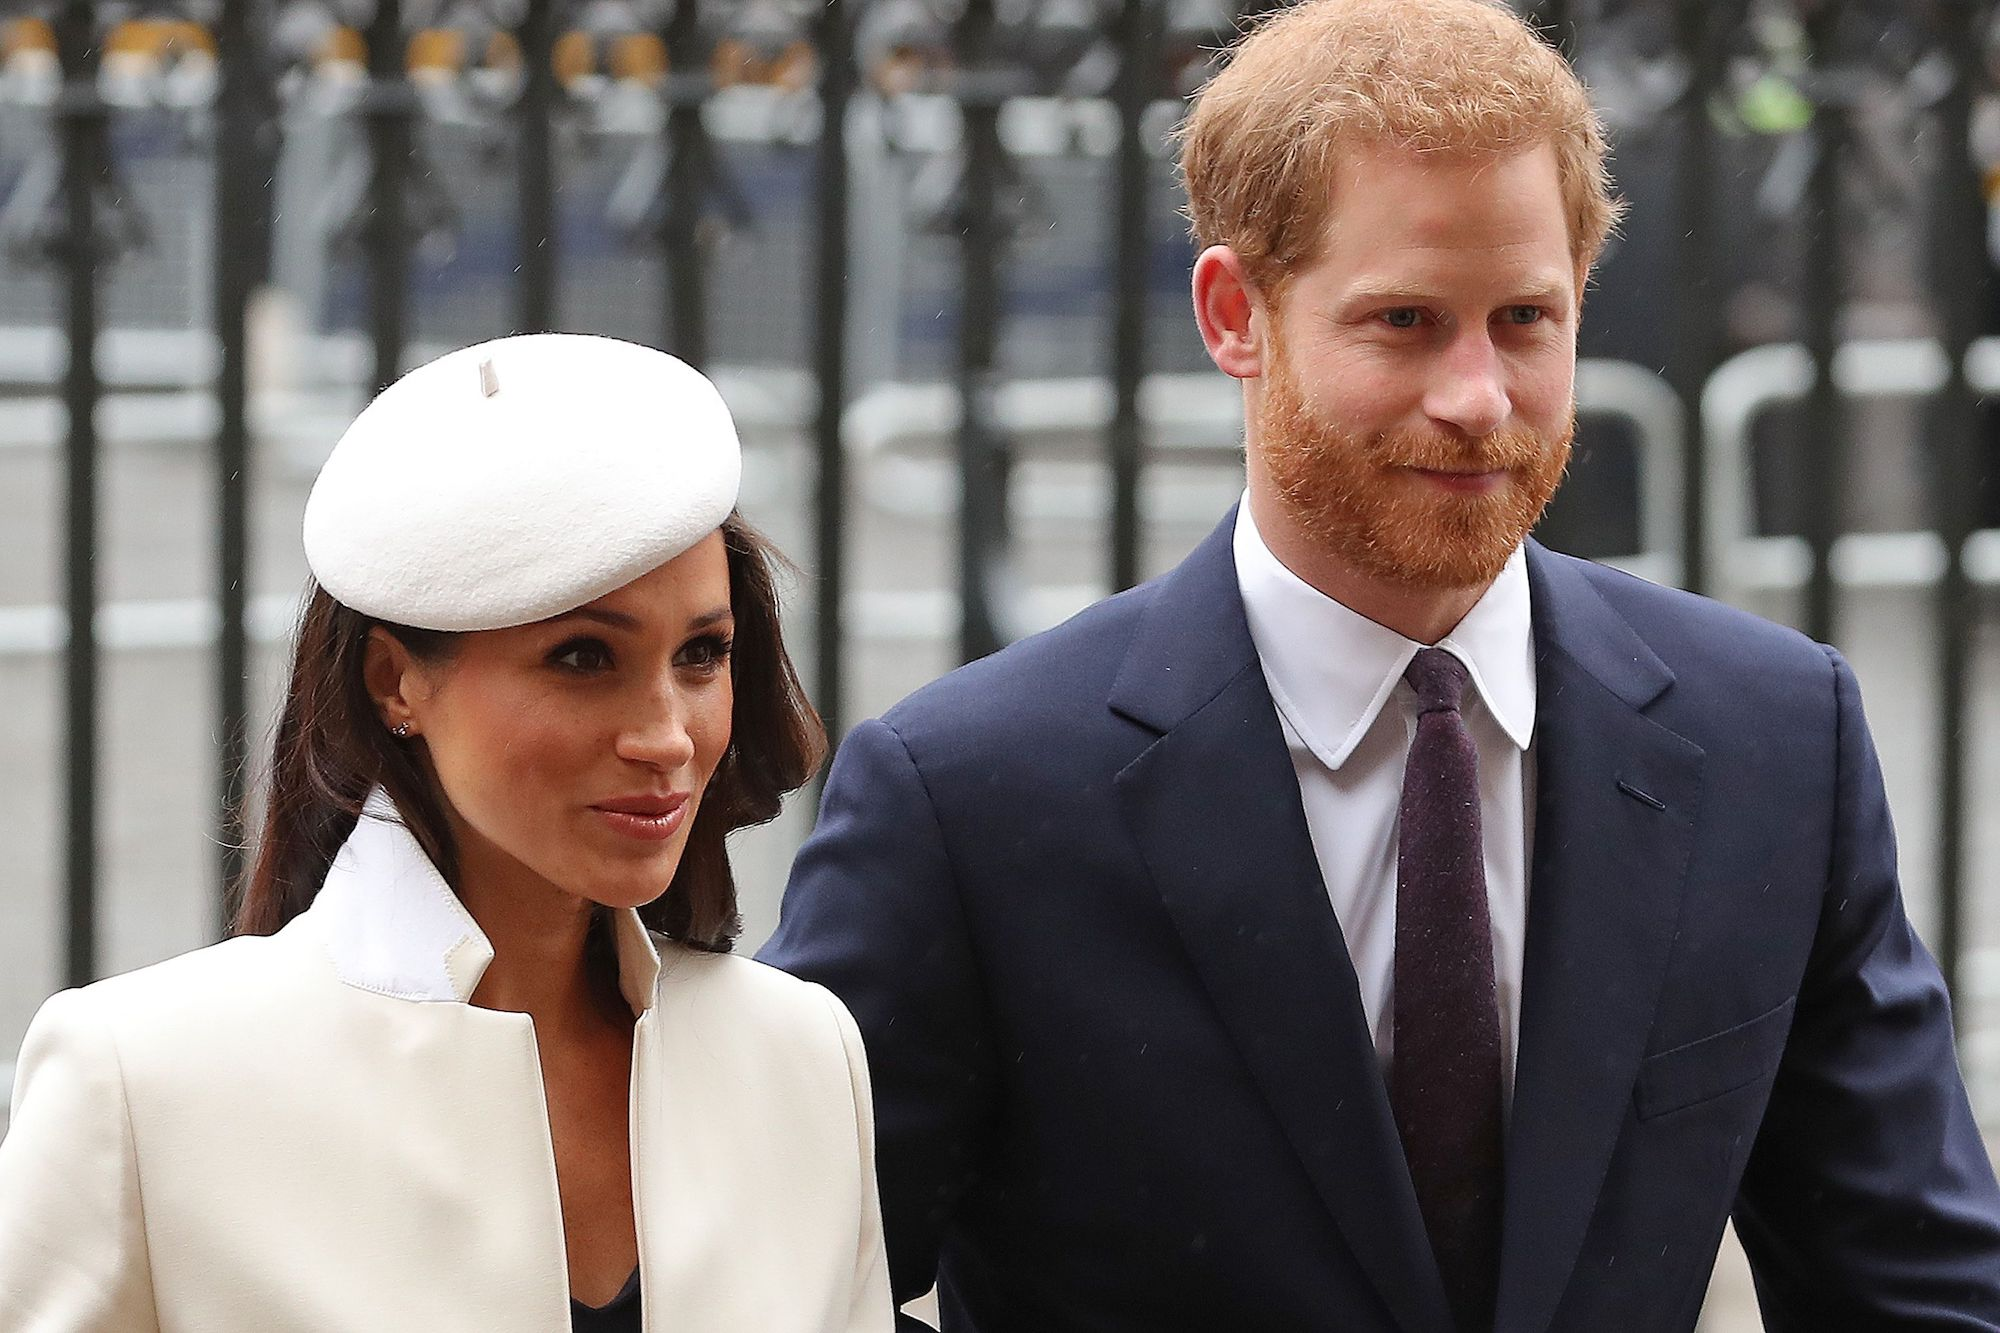 Meghan Markle Joined Queen Elizabeth and Kate Middleton for Her Biggest Royal Event Yet